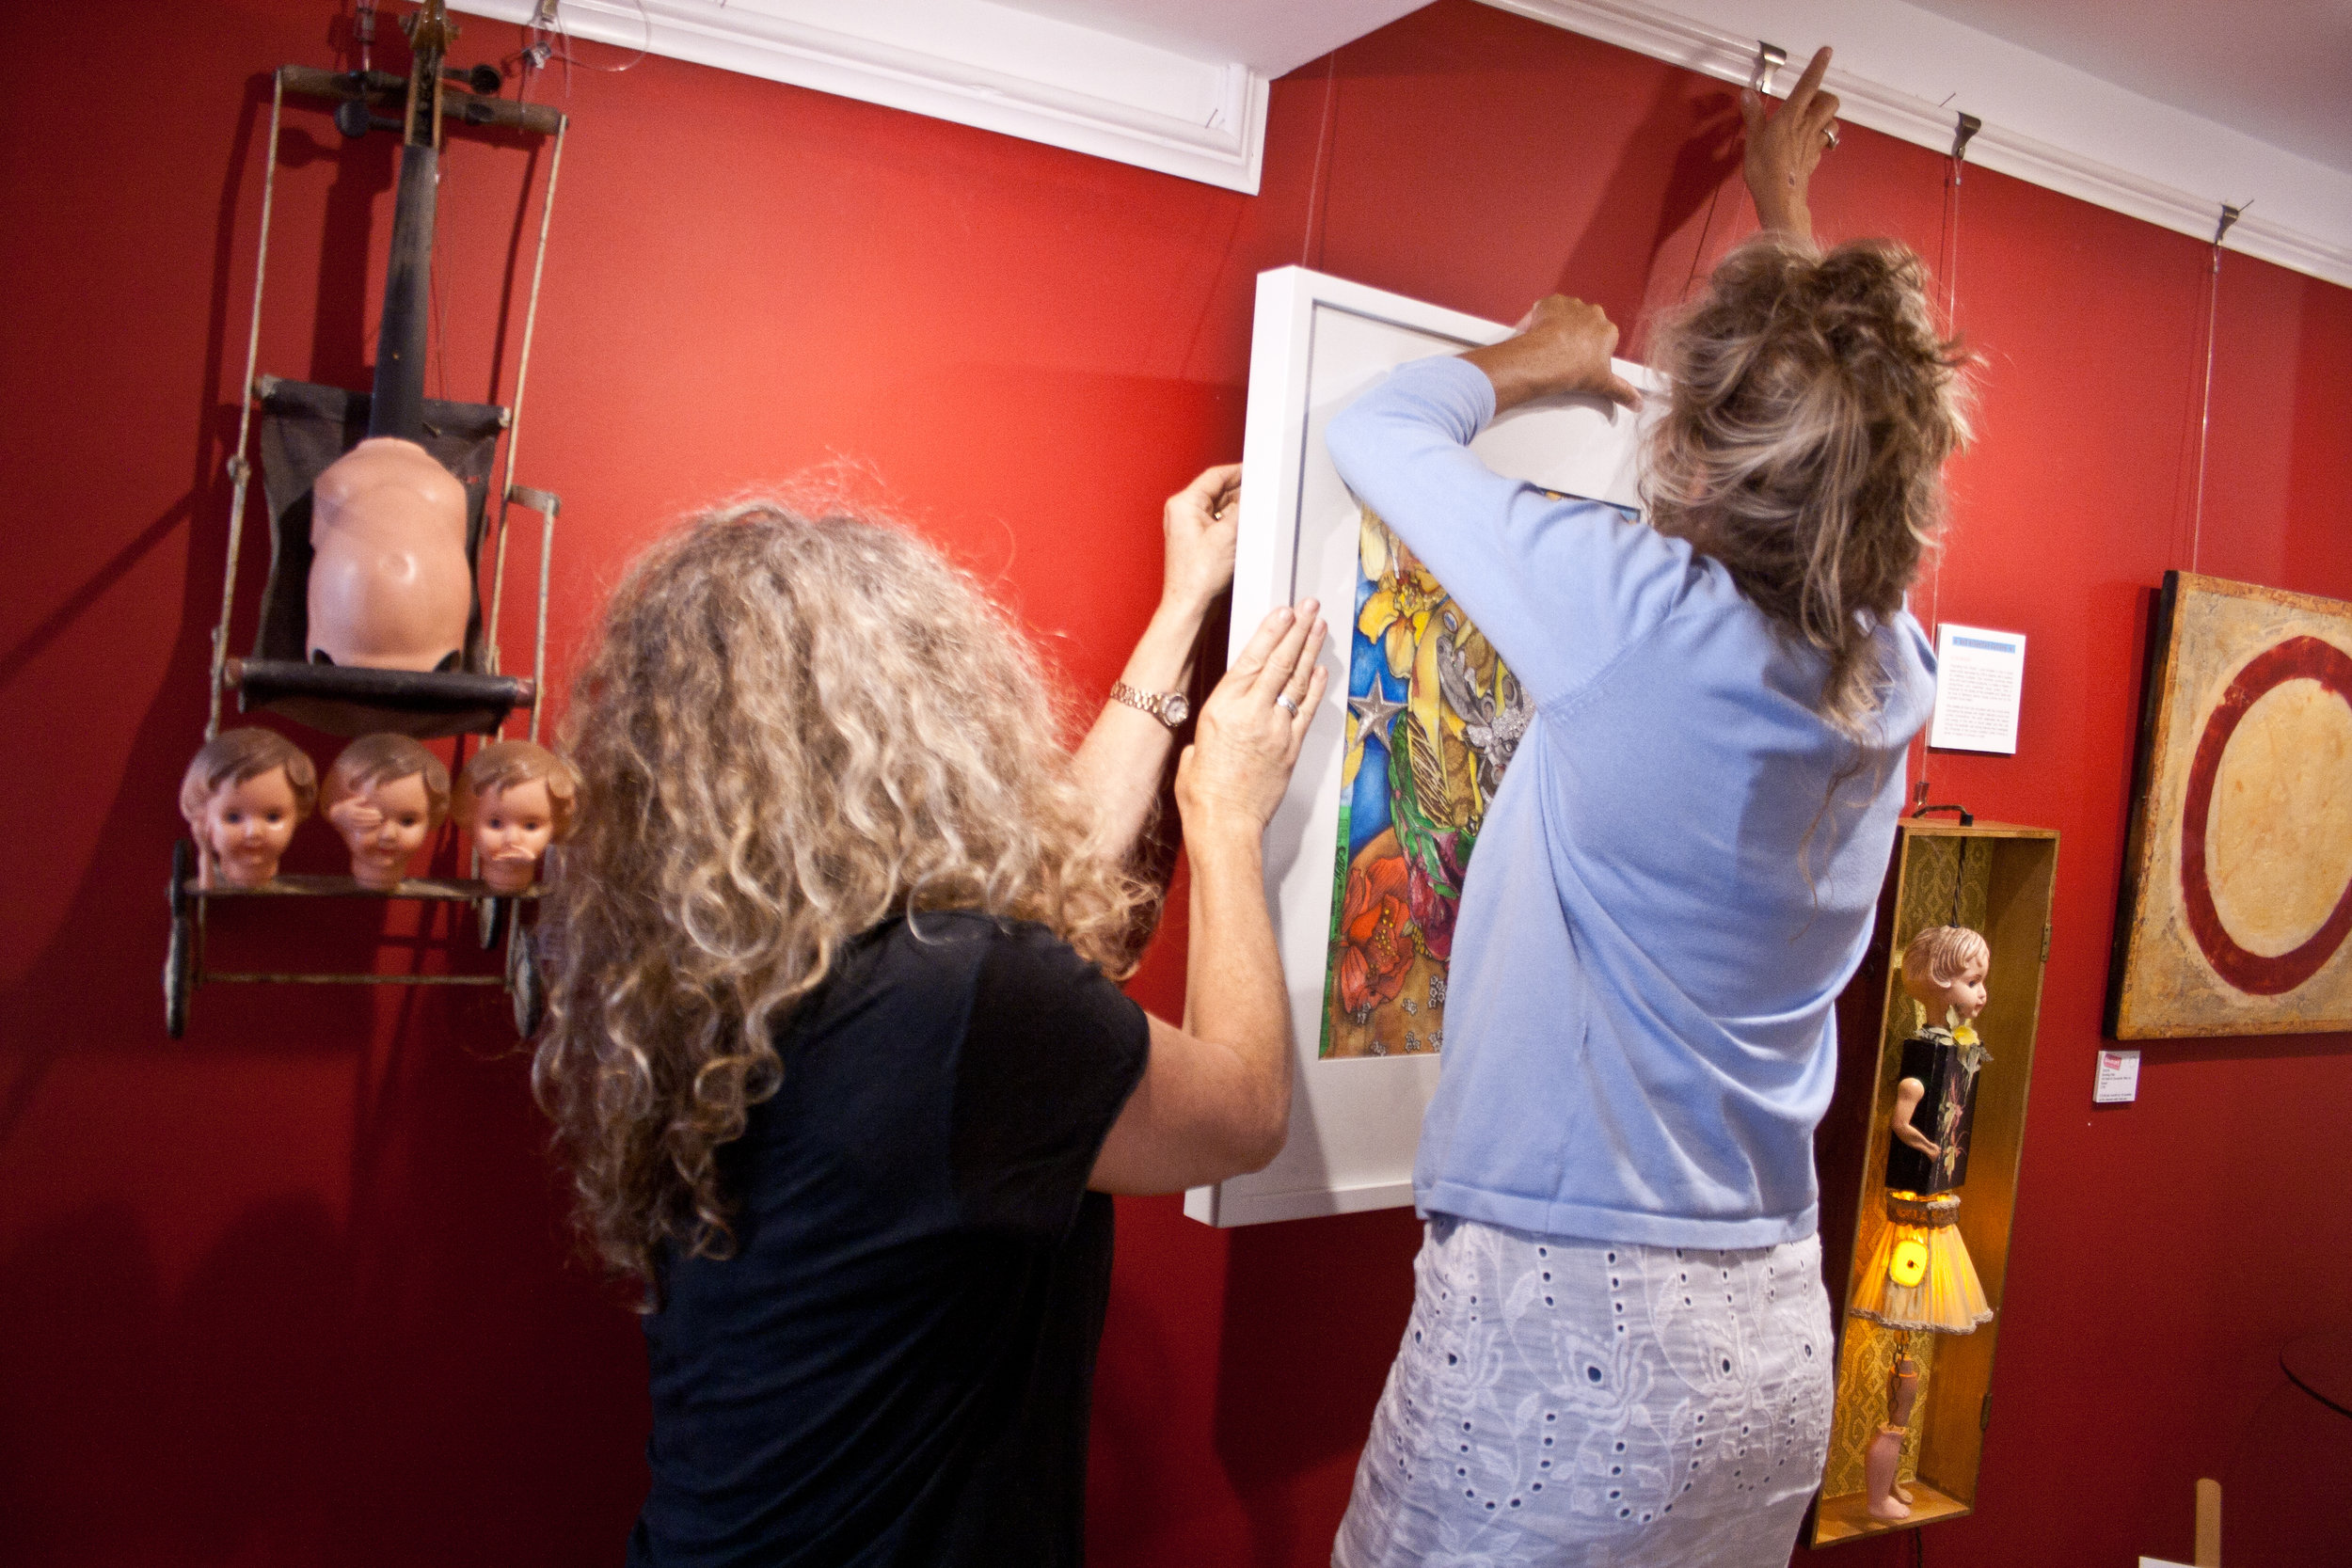 - Always busy curating our gallery space - Sarah & Sallyann work together to keep Red Propeller looking fabulous!